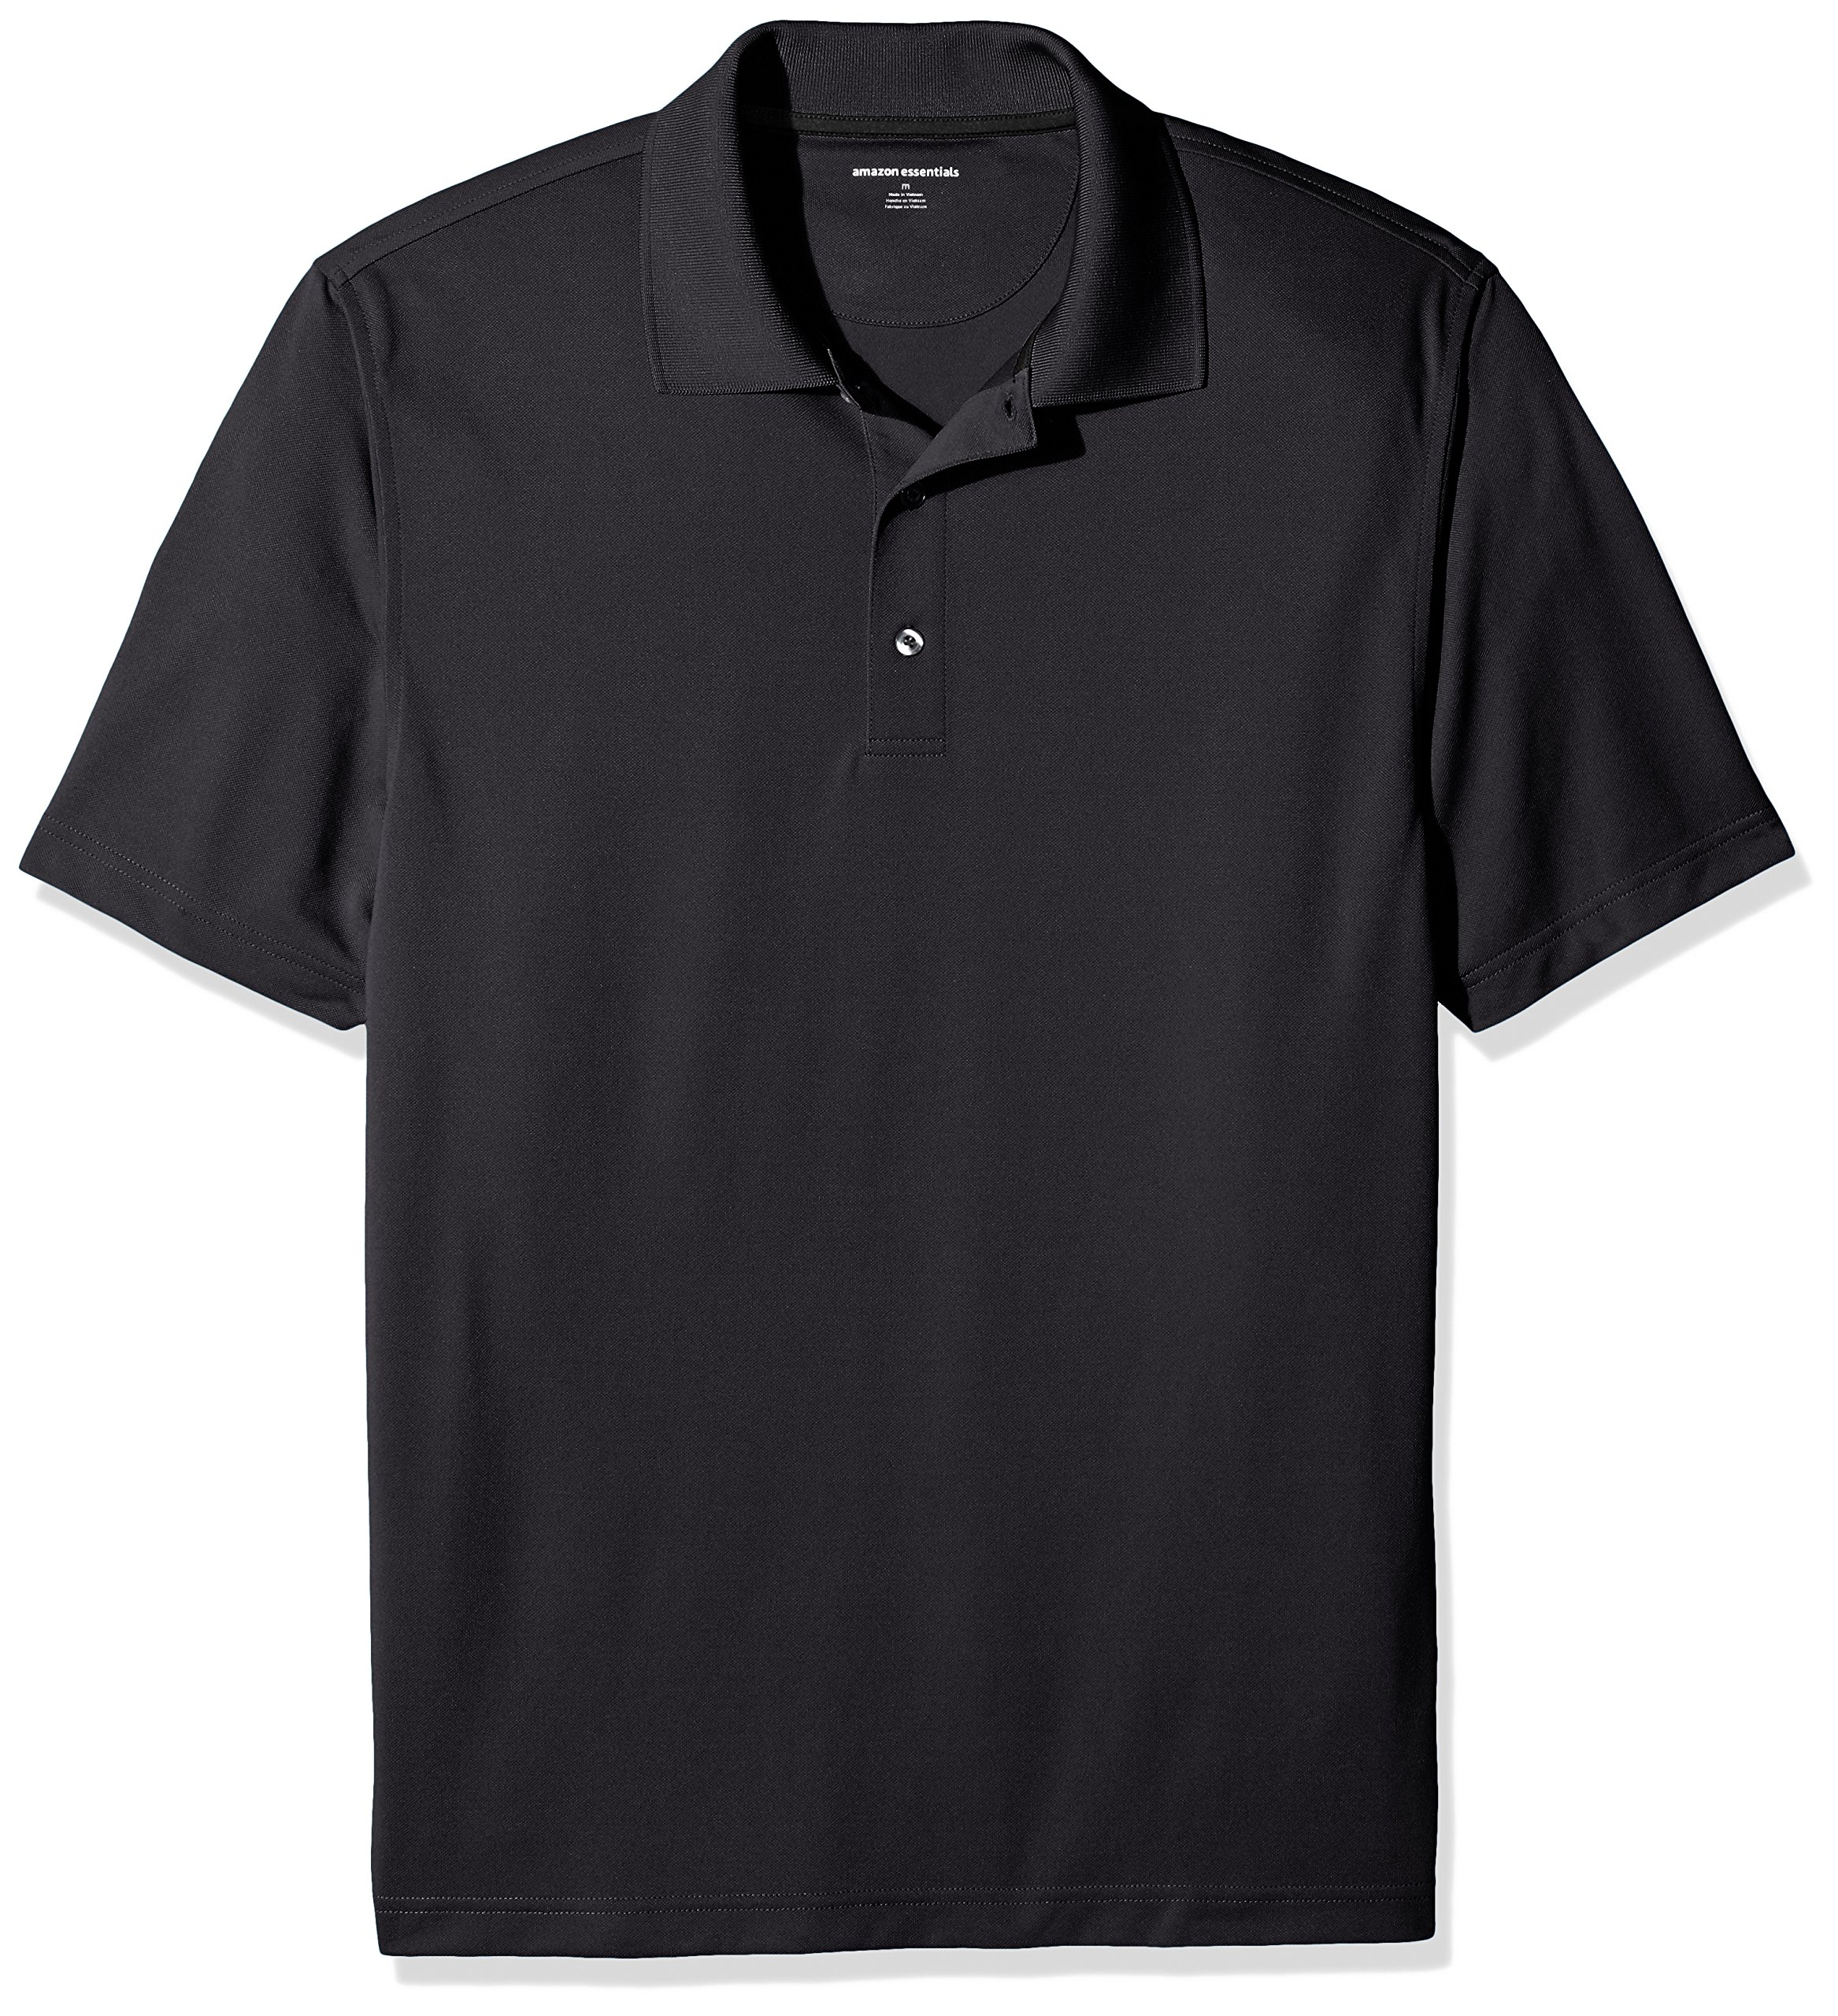 Amazon Essentials Men's Regular-Fit Quick-Dry Golf Polo Shirt, Black, X-Small